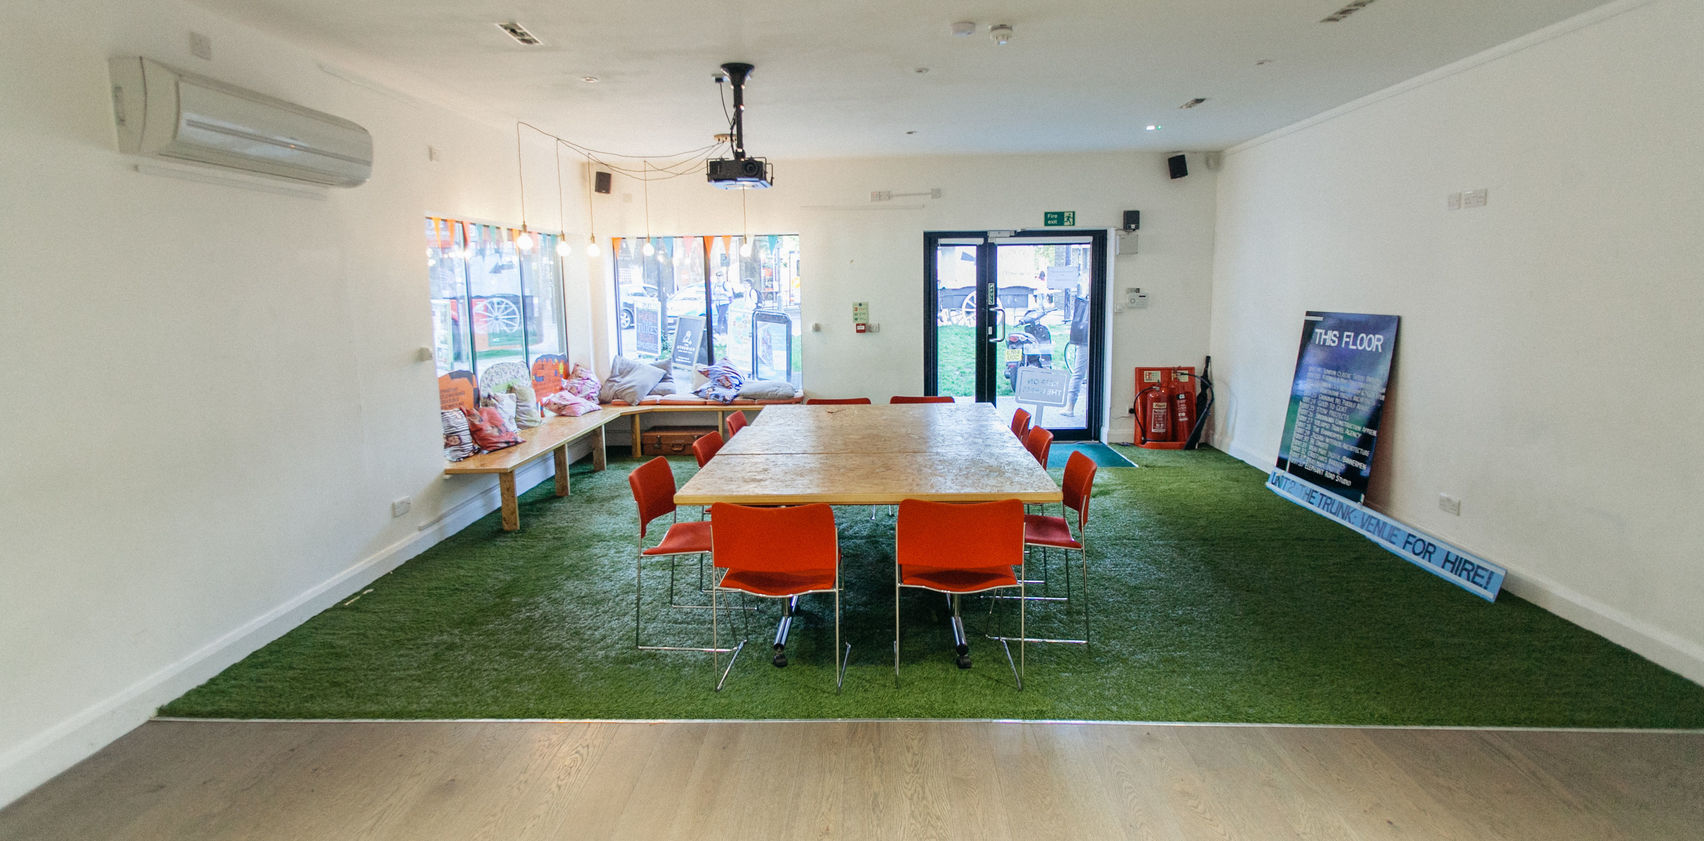 Sunny meeting room 2 mins from Elephant & Castle S, The Trunk, The Artworks